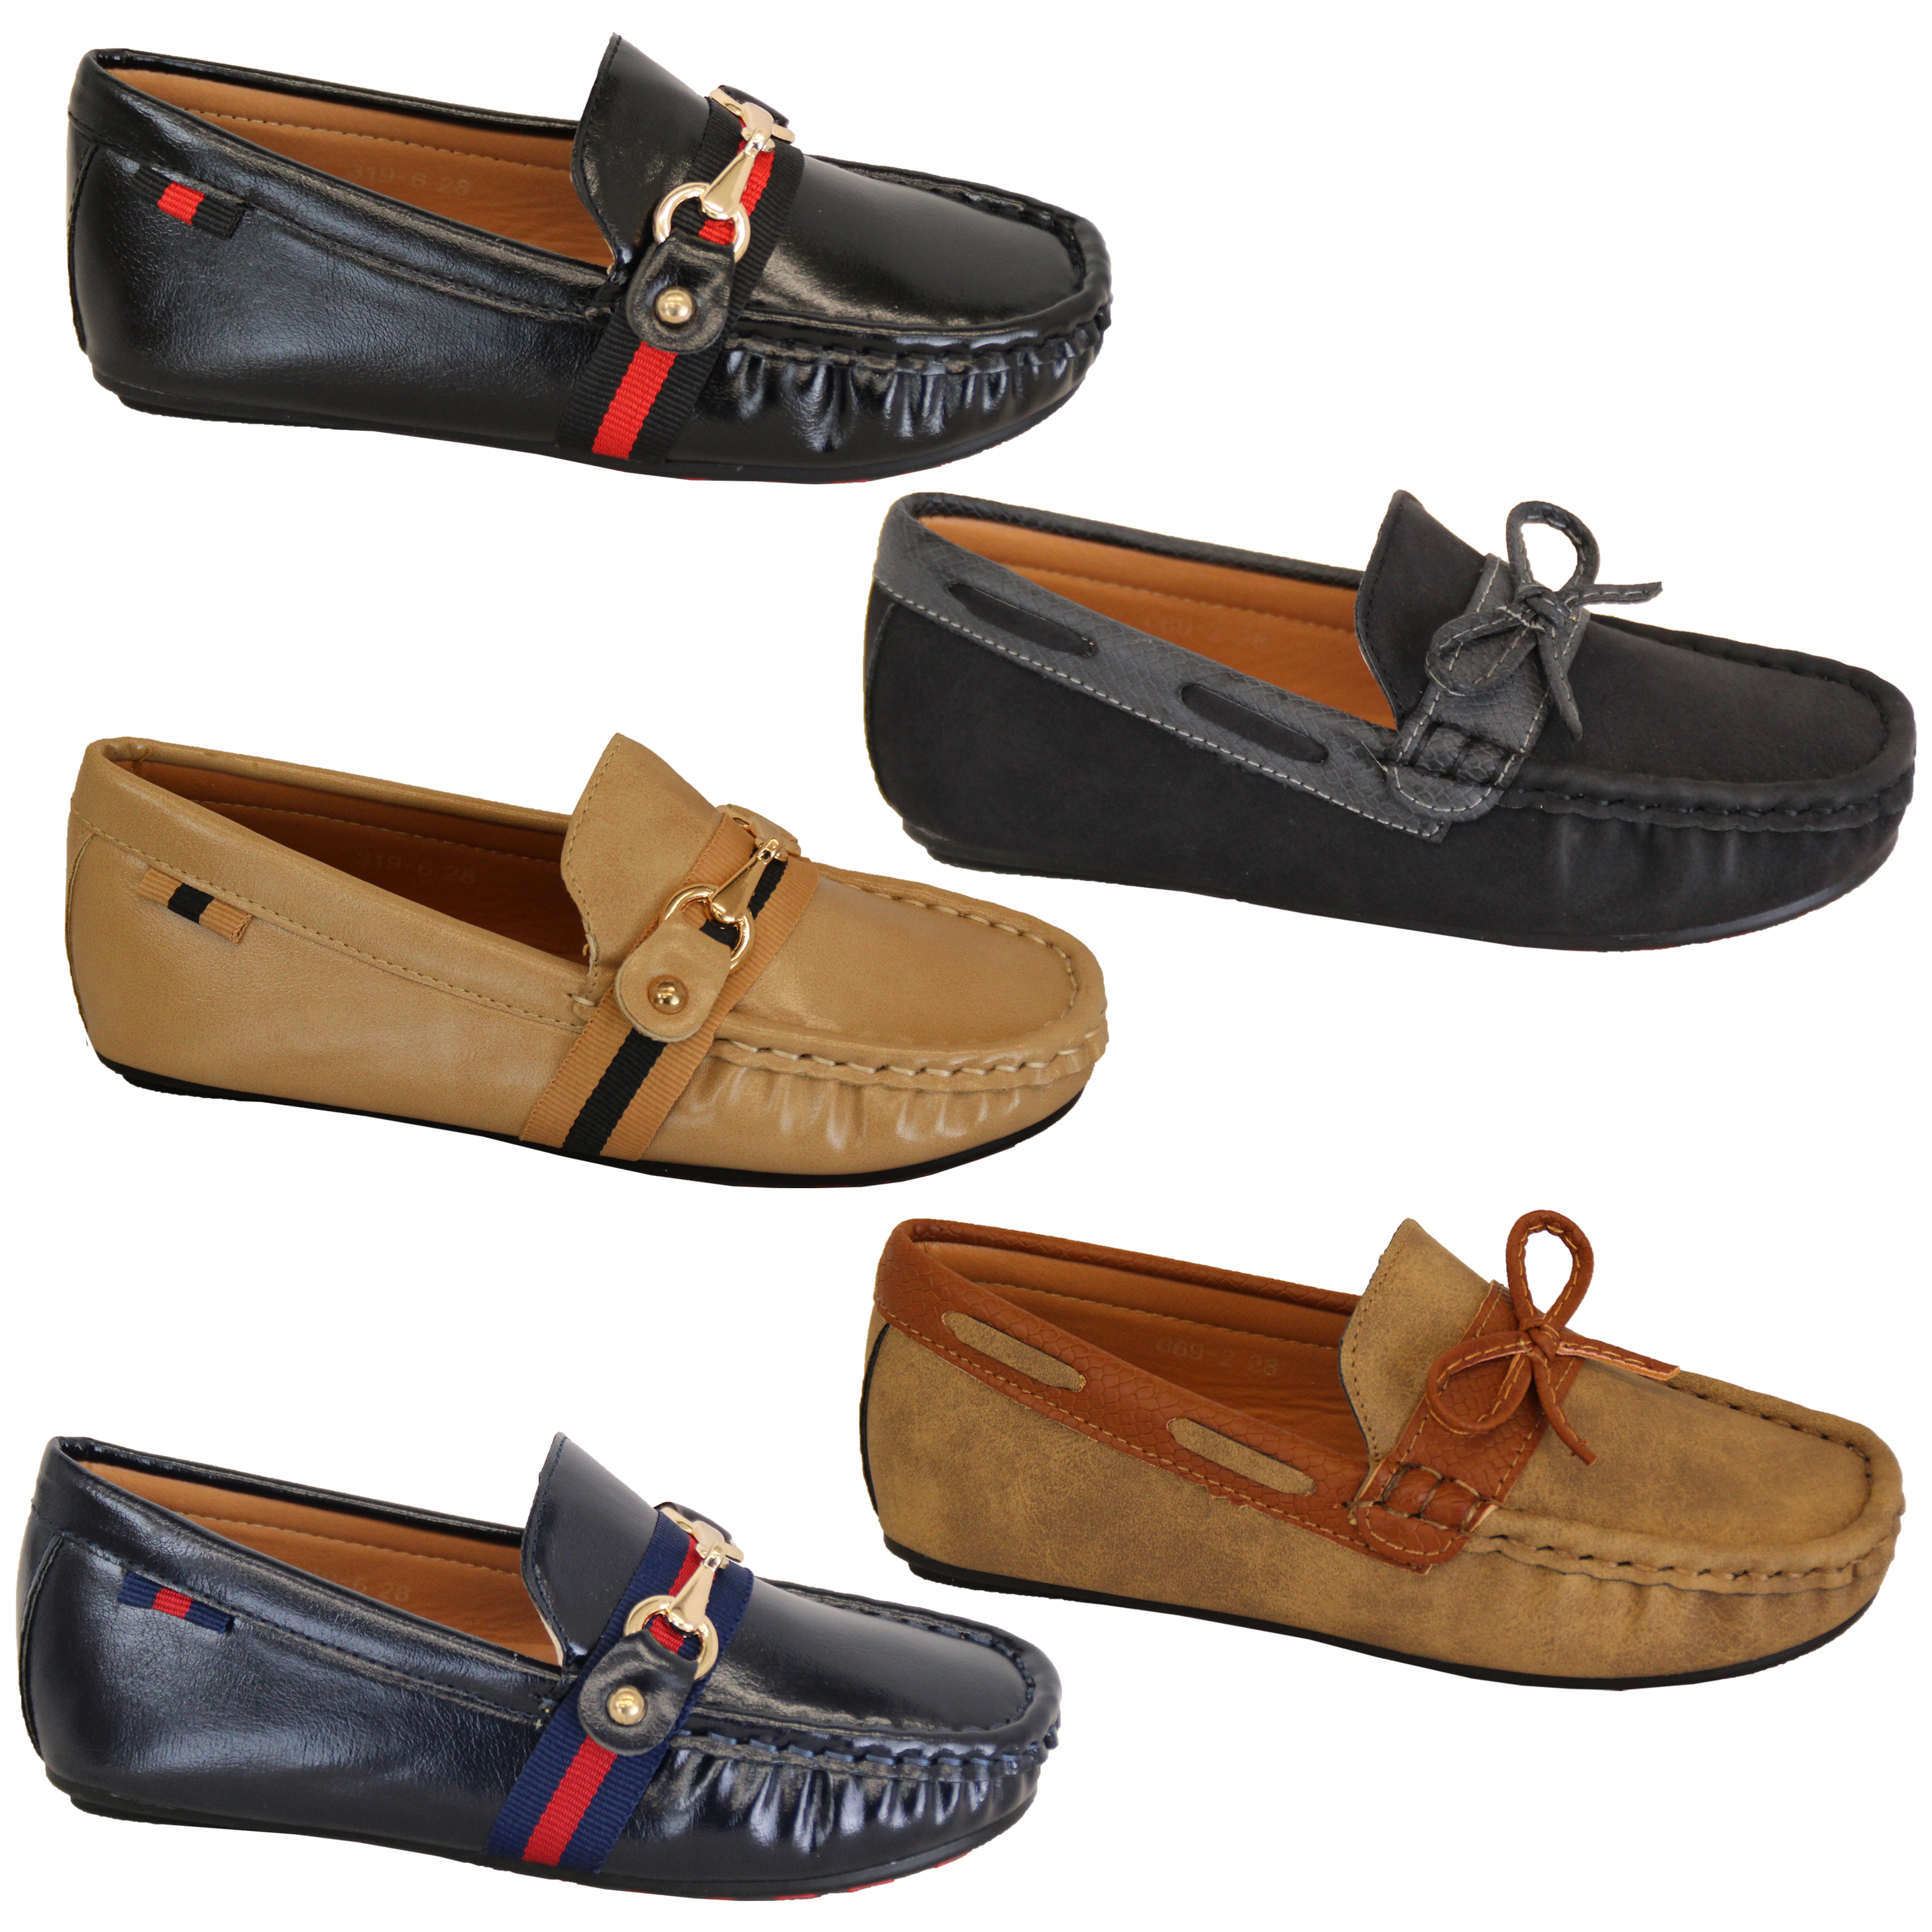 Boys Moccasins Kids Boat Deck Shoes Driving Slip On Loafers Ribbon Bow  Fashion   eBay